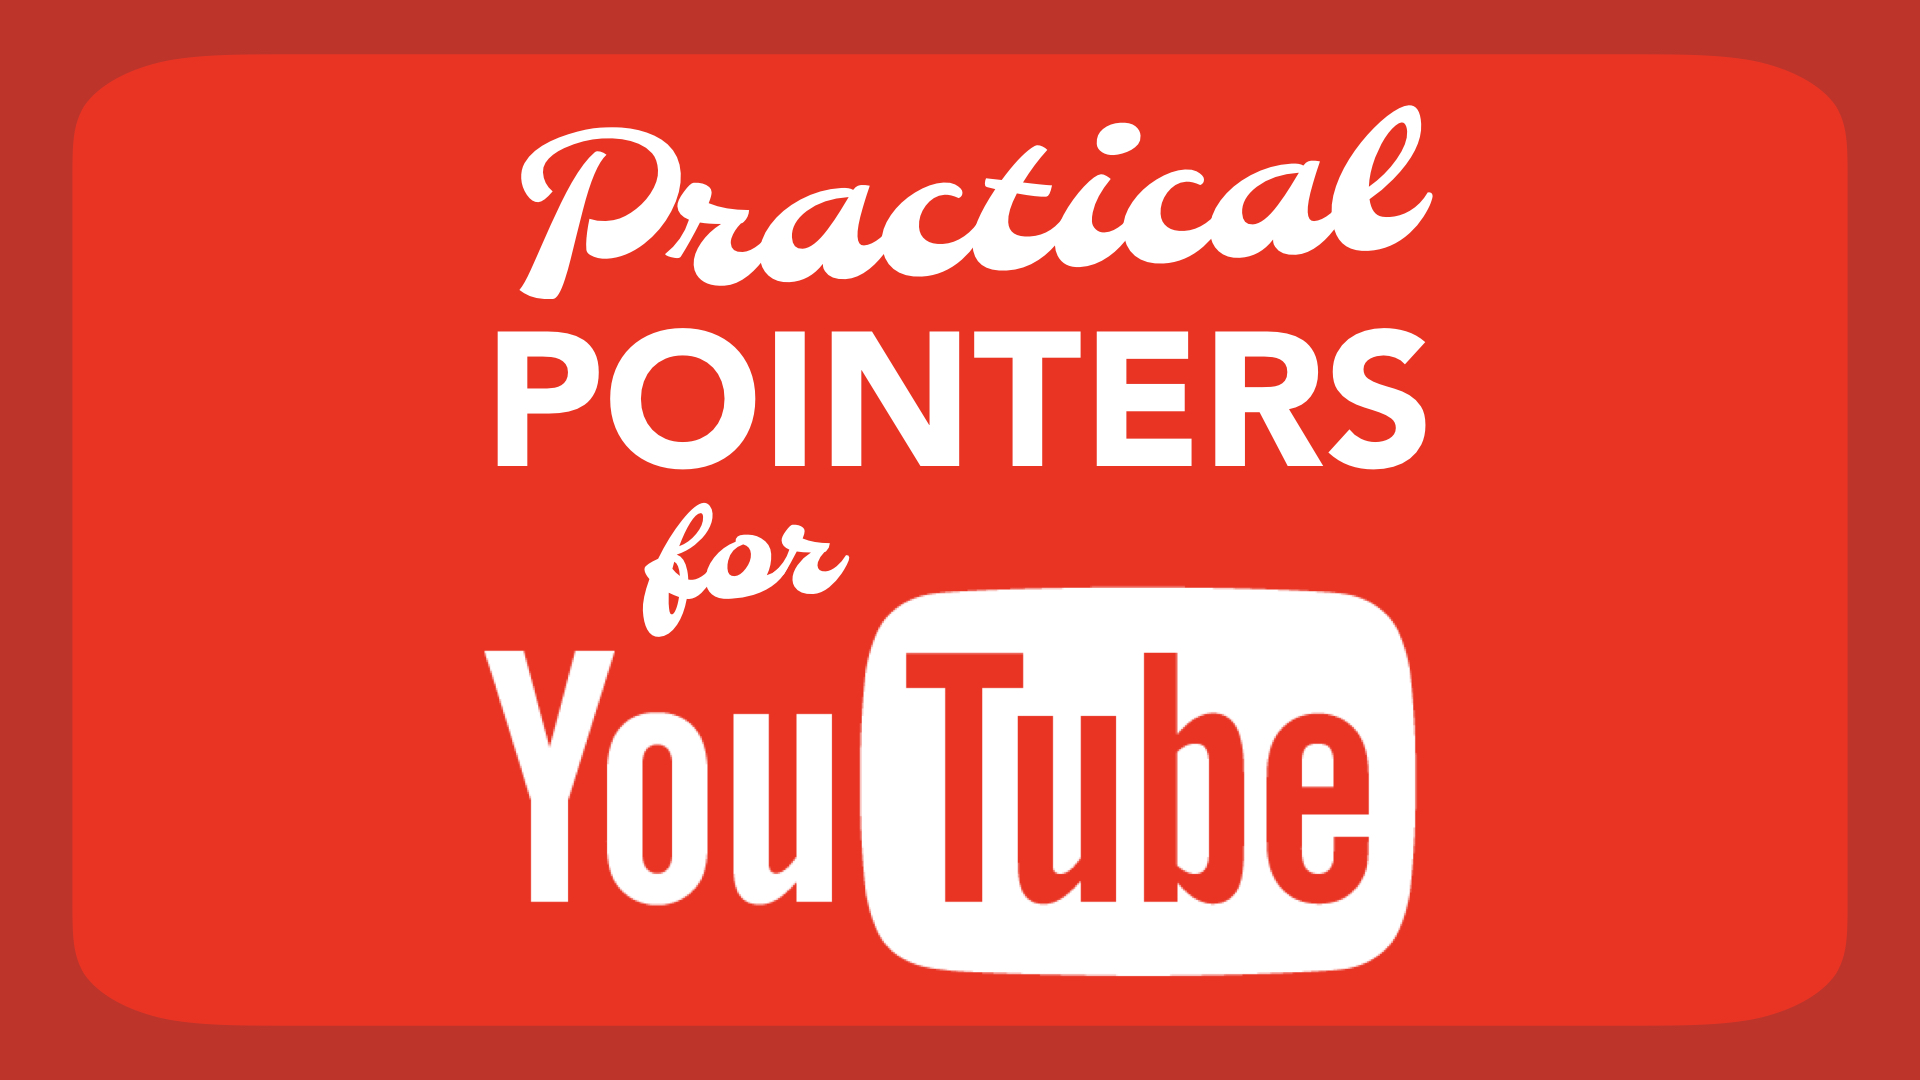 Practical Pointers for YouTube